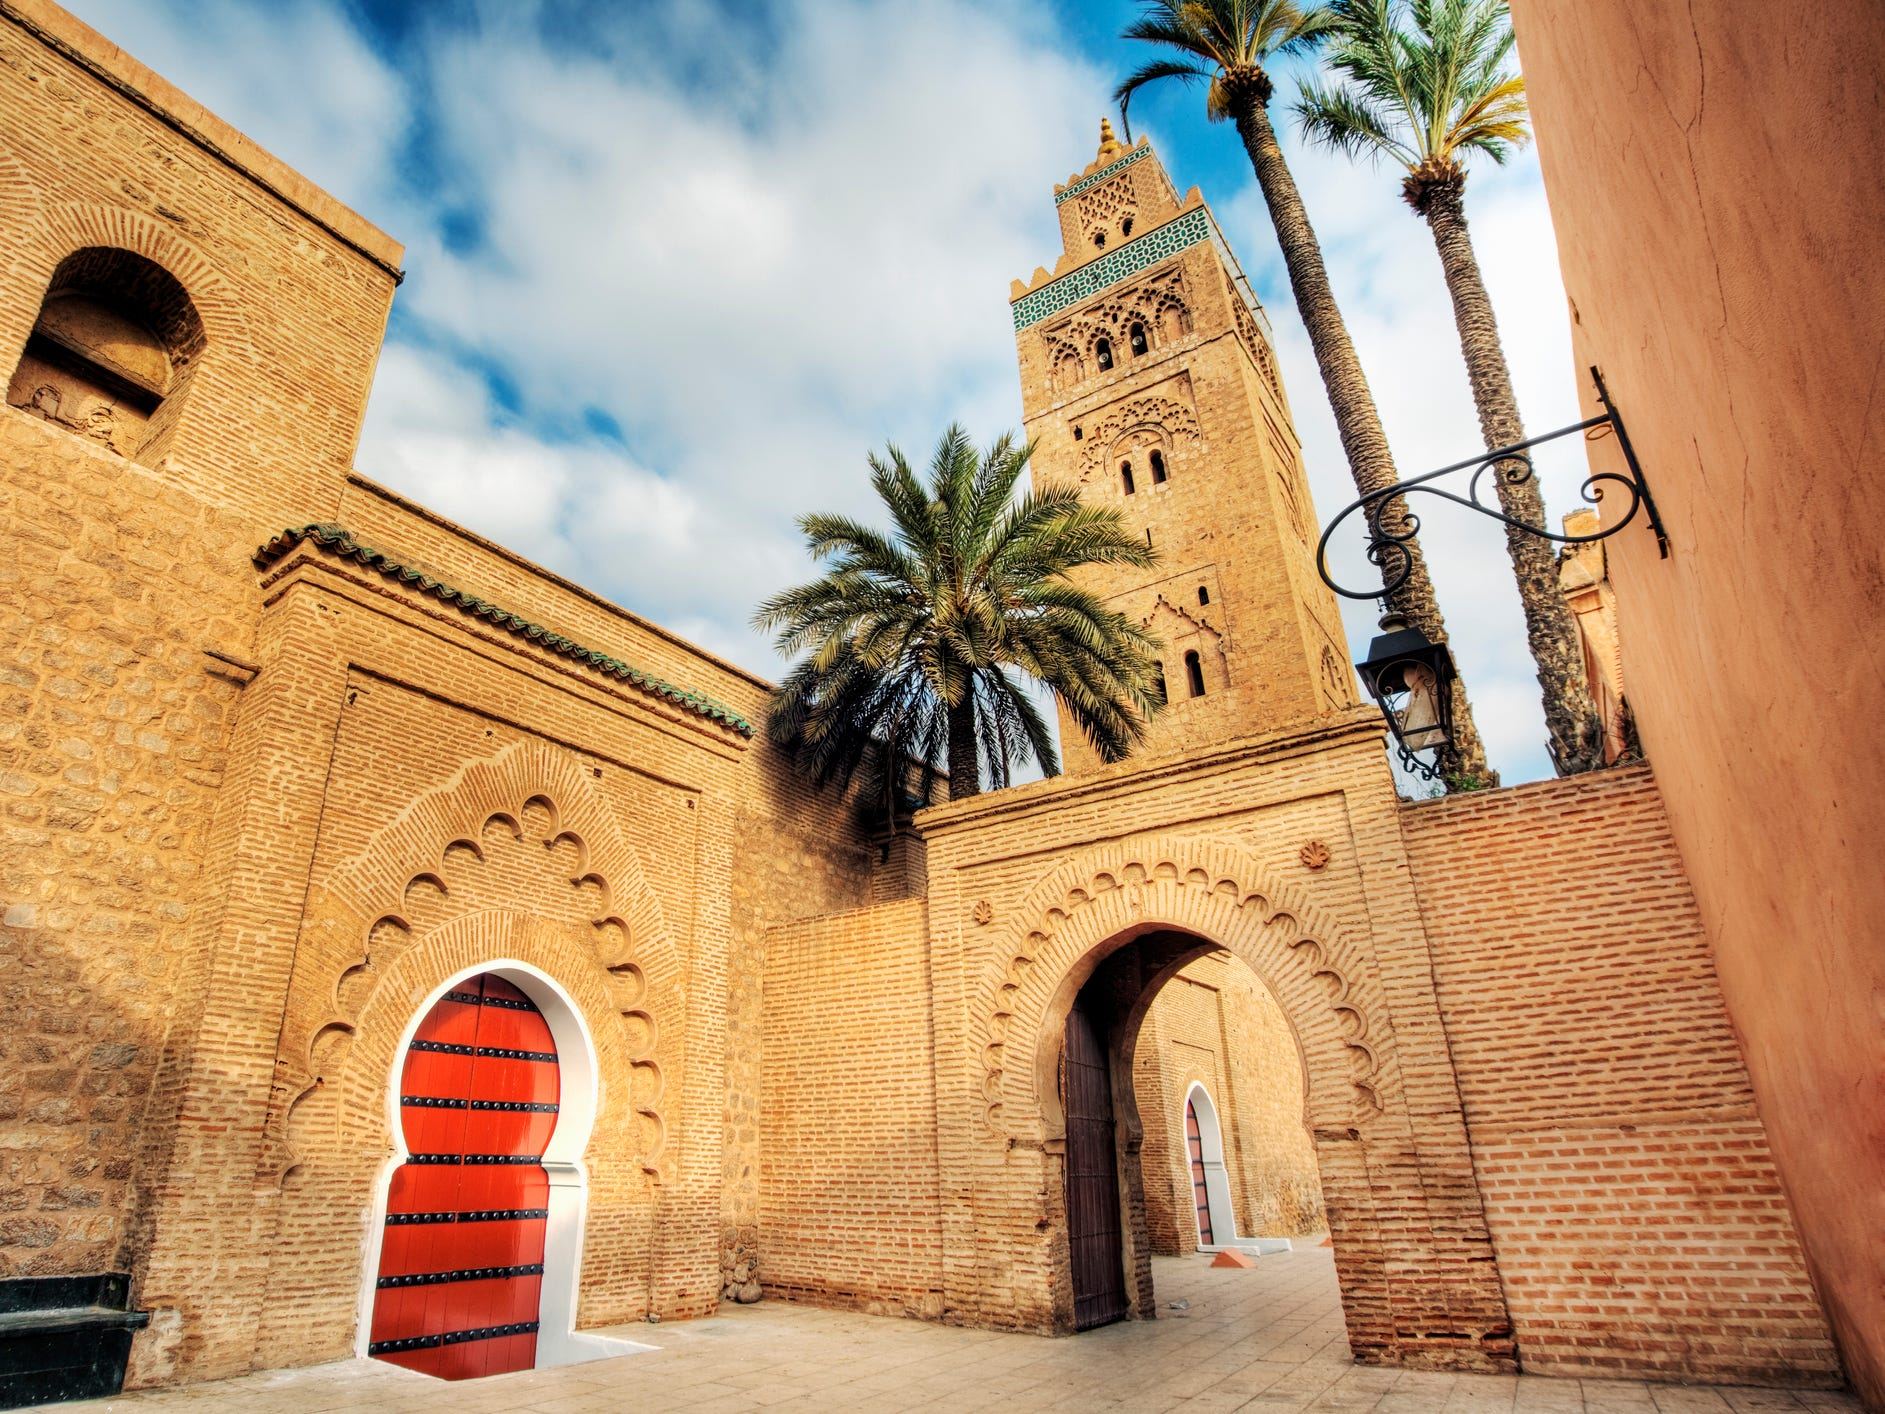 Morocco: As this tourist destination increases in popularity, airfare is dropping due to new direct flights from Boston, which are causing increased competition on the East Coast. According to SmarterTravel, you can expect round-trip airfare to cost you about $500 from Chicago, D.C. and New York.